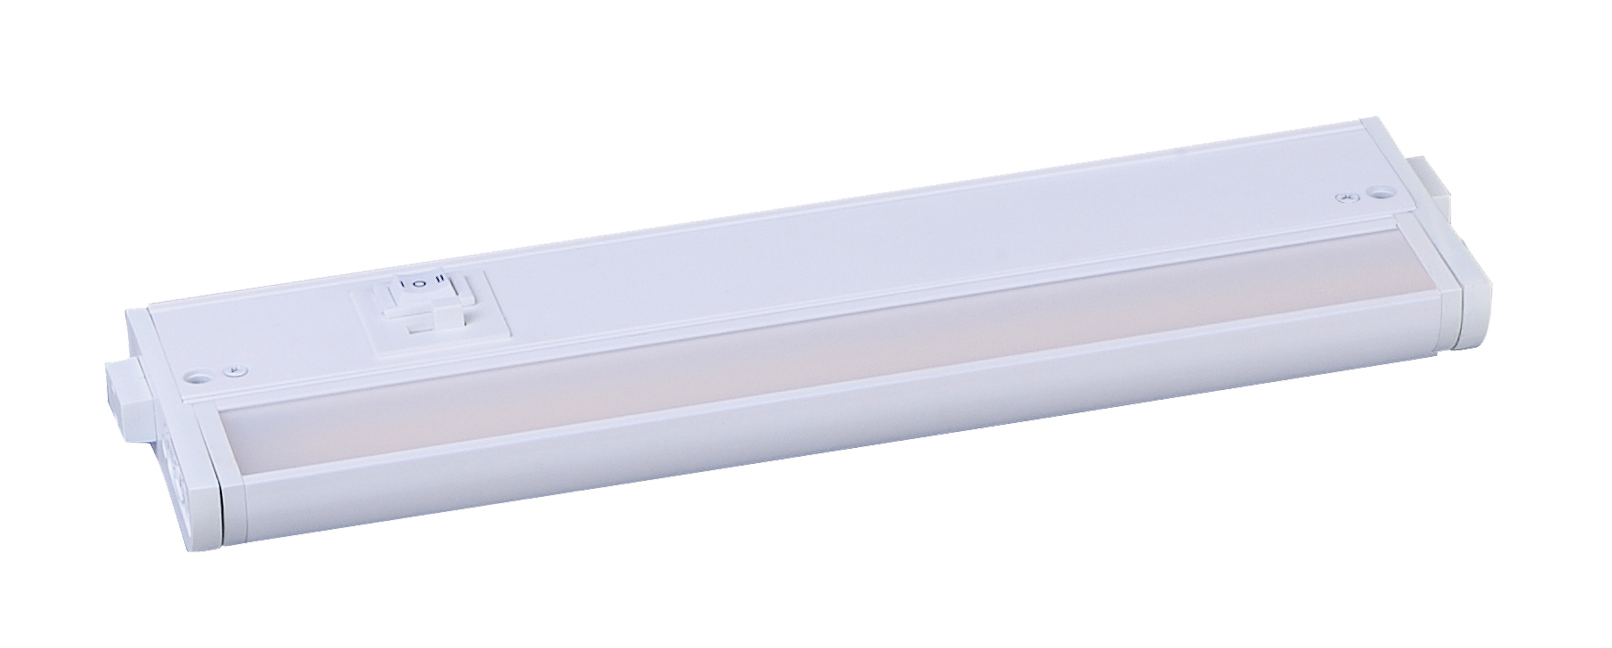 CounterMax MX L 2700 4000K Under Cabinet Light By Maxim Lighting